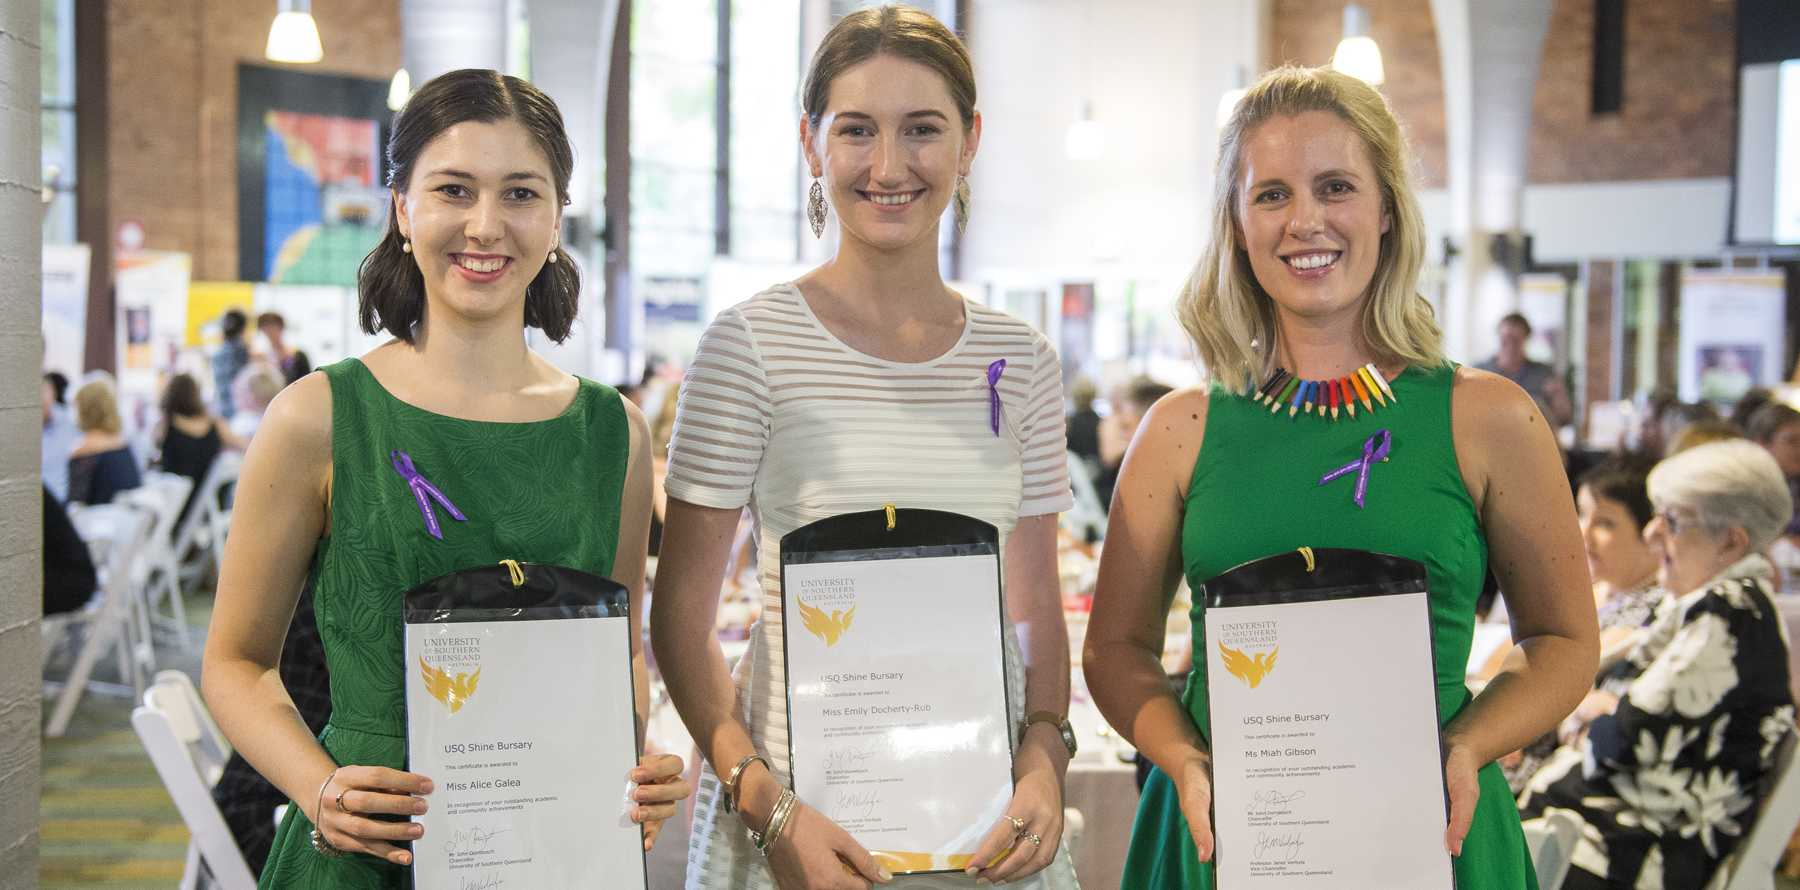 SHINING BRIGHT: The 2017 USQ Shine bursary winners Alice Galea (left), Emily Docherty-Rub (centre), and Miah Gibson (right) are smiling bright.